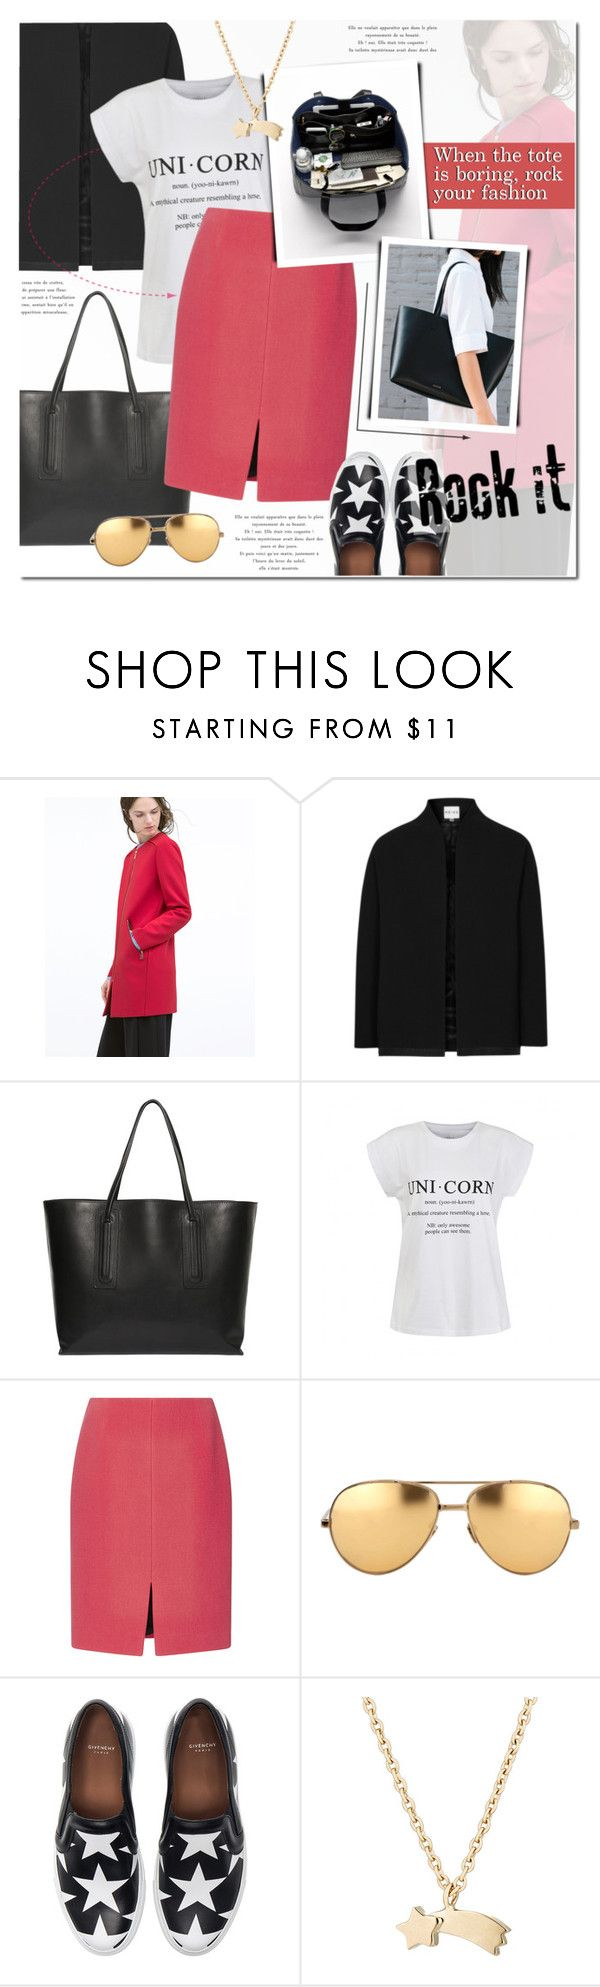 """""""Tote Bags"""" by anna-anica ❤ liked on Polyvore featuring Zara, Reiss, Rick Owens, Ally Fashion, Sonia Rykiel, Linda Farrow, Givenchy, Minor Obsessions, women's clothing and women's fashion"""